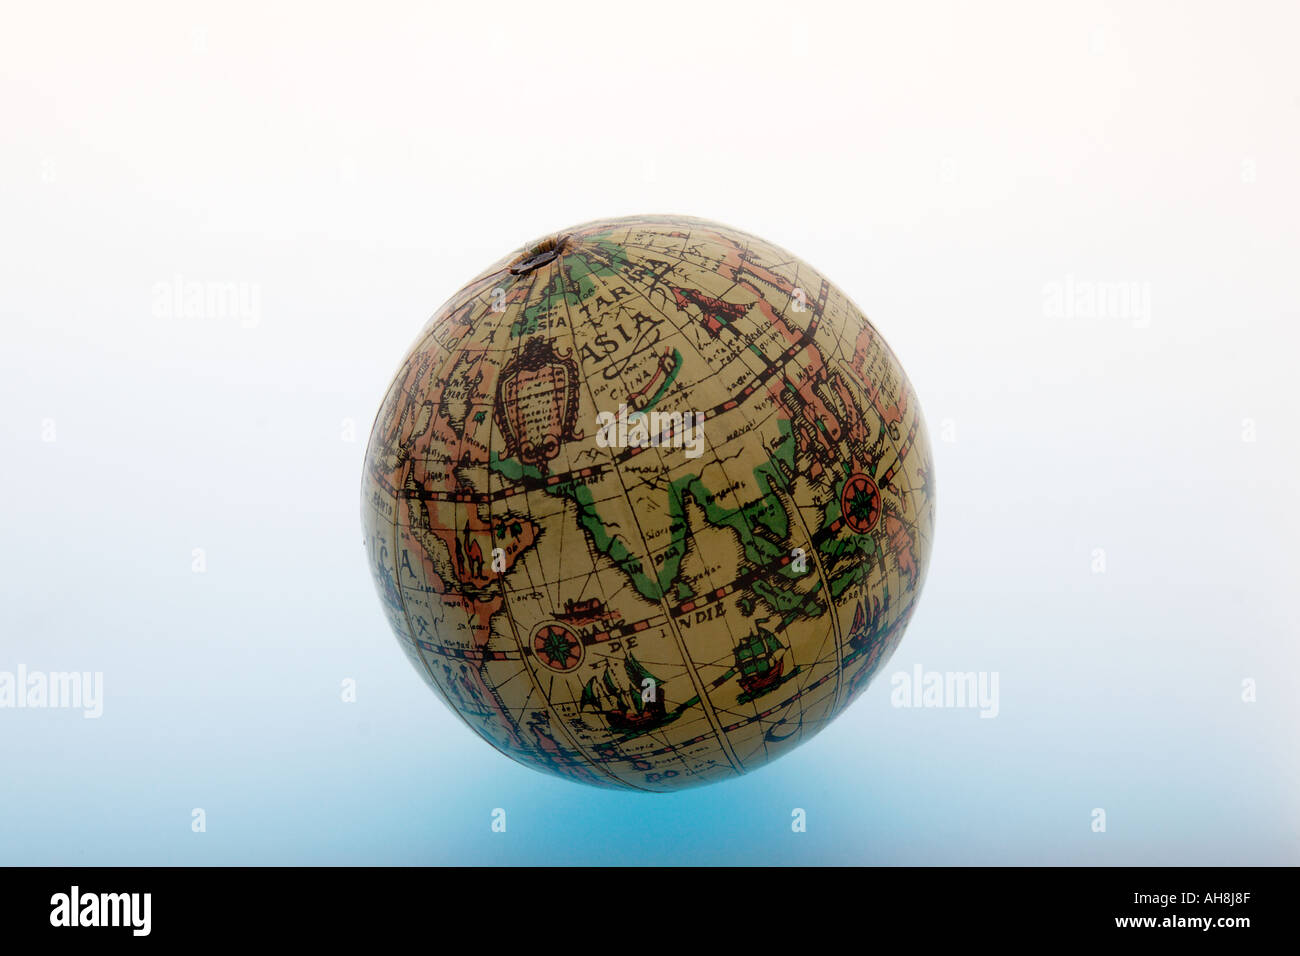 Aad71459 round spherical globe of ball shape of old world map aad71459 round spherical globe of ball shape of old world map showing earth asia indian ocean india on white background gumiabroncs Gallery